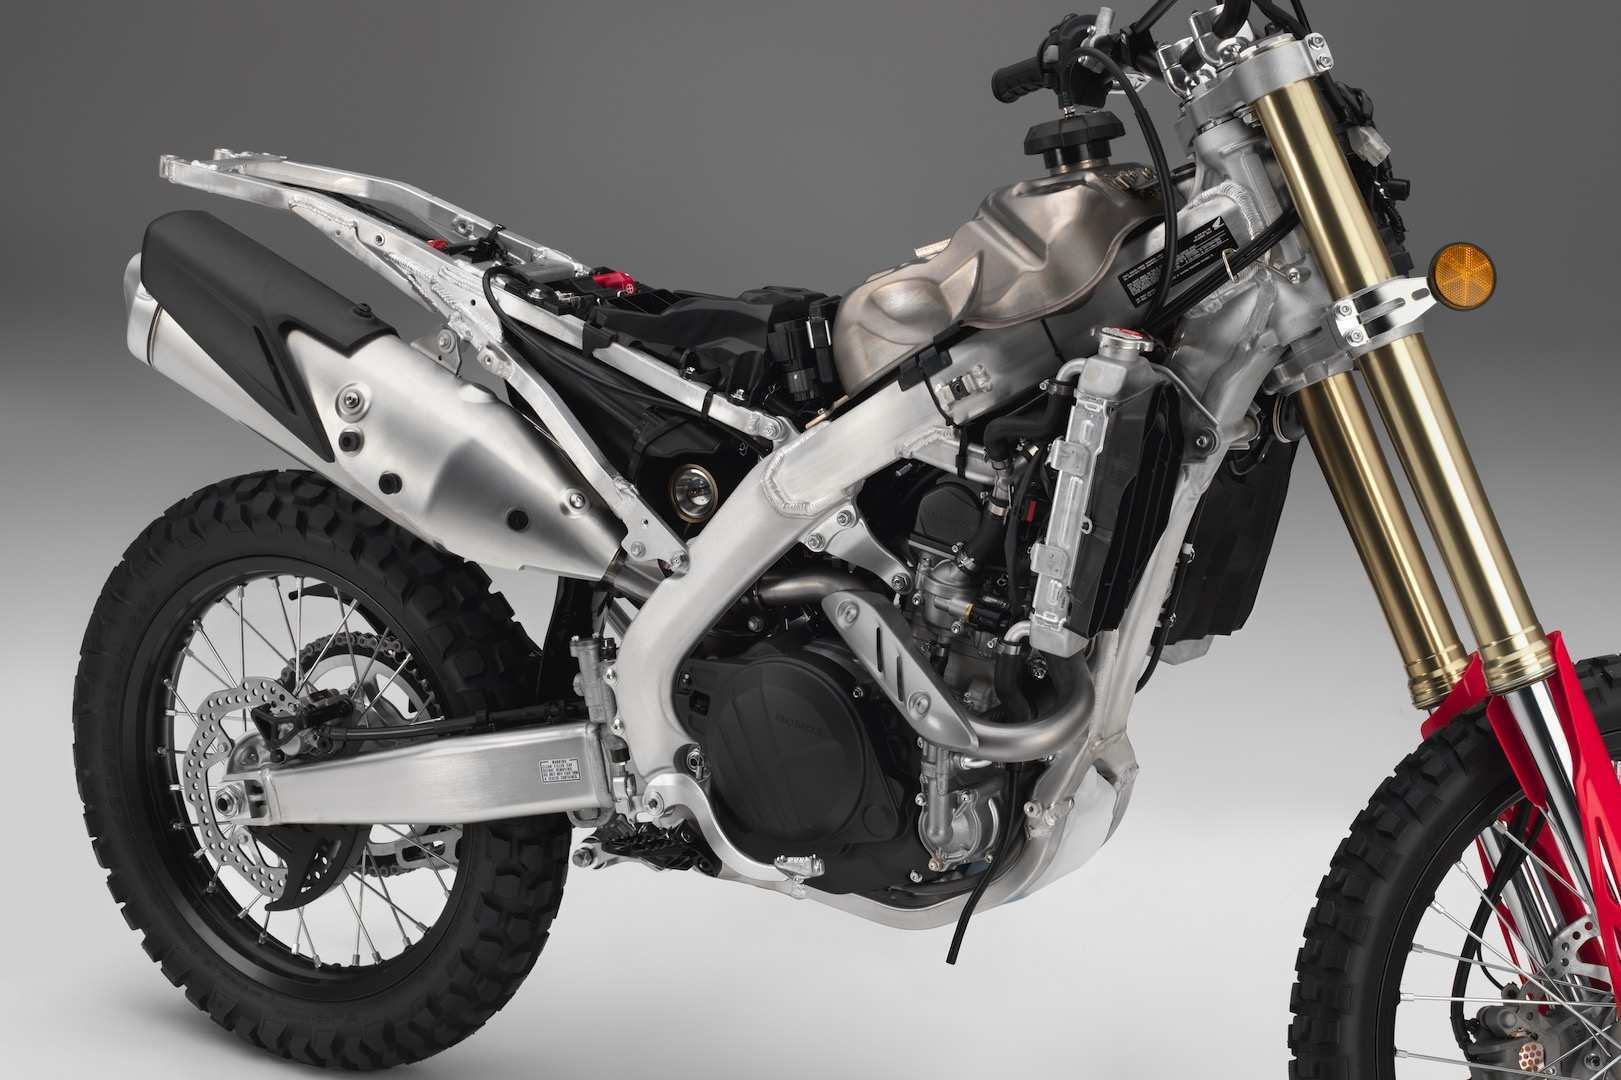 68 Gallery of 2019 Honda Crf450L Rumors for 2019 Honda Crf450L